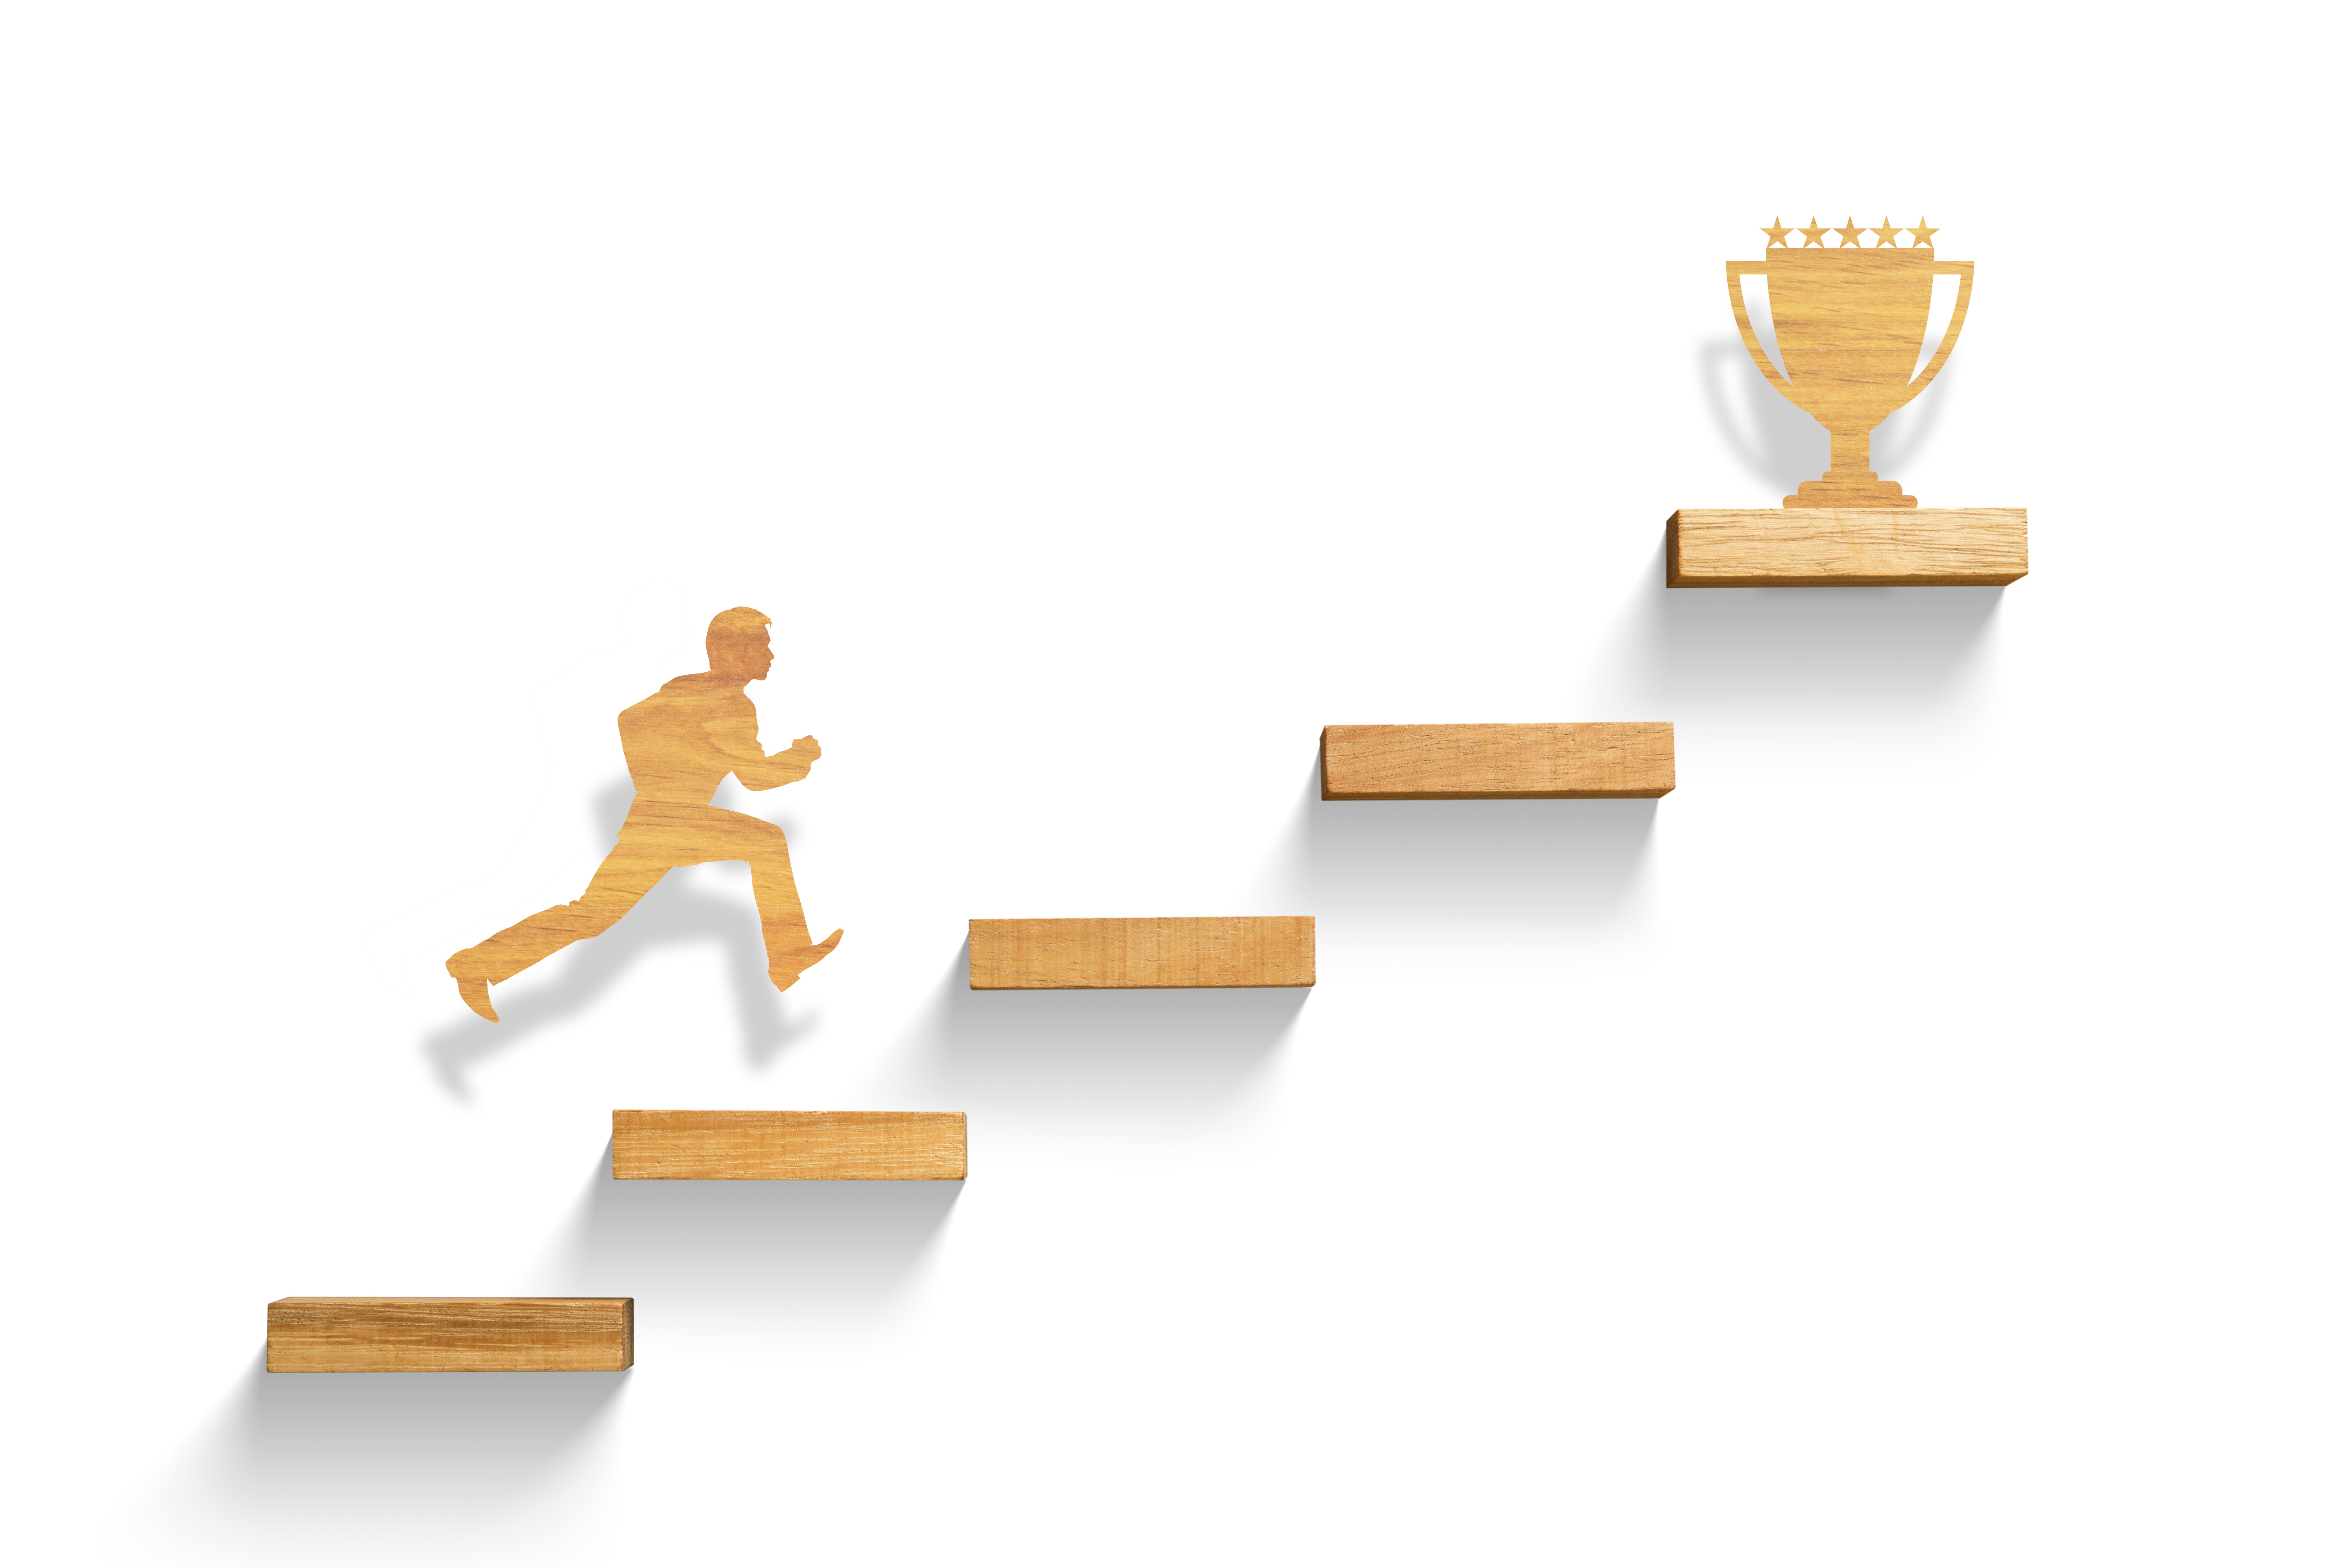 man-running-up-stairs-to-trophy